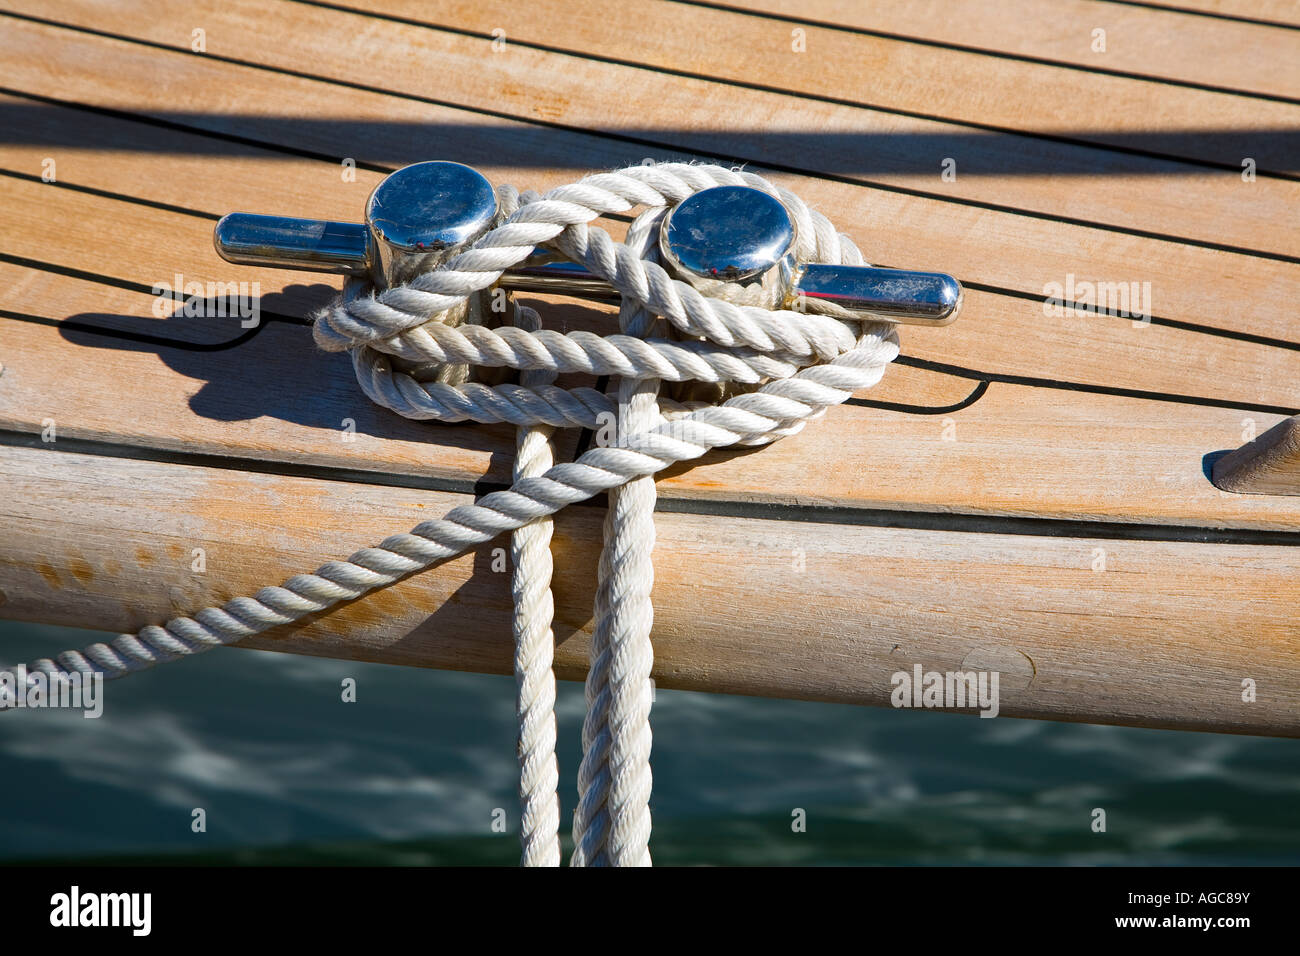 Rope around Polished Stainless Steel cleat on wooden deck - Stock Image